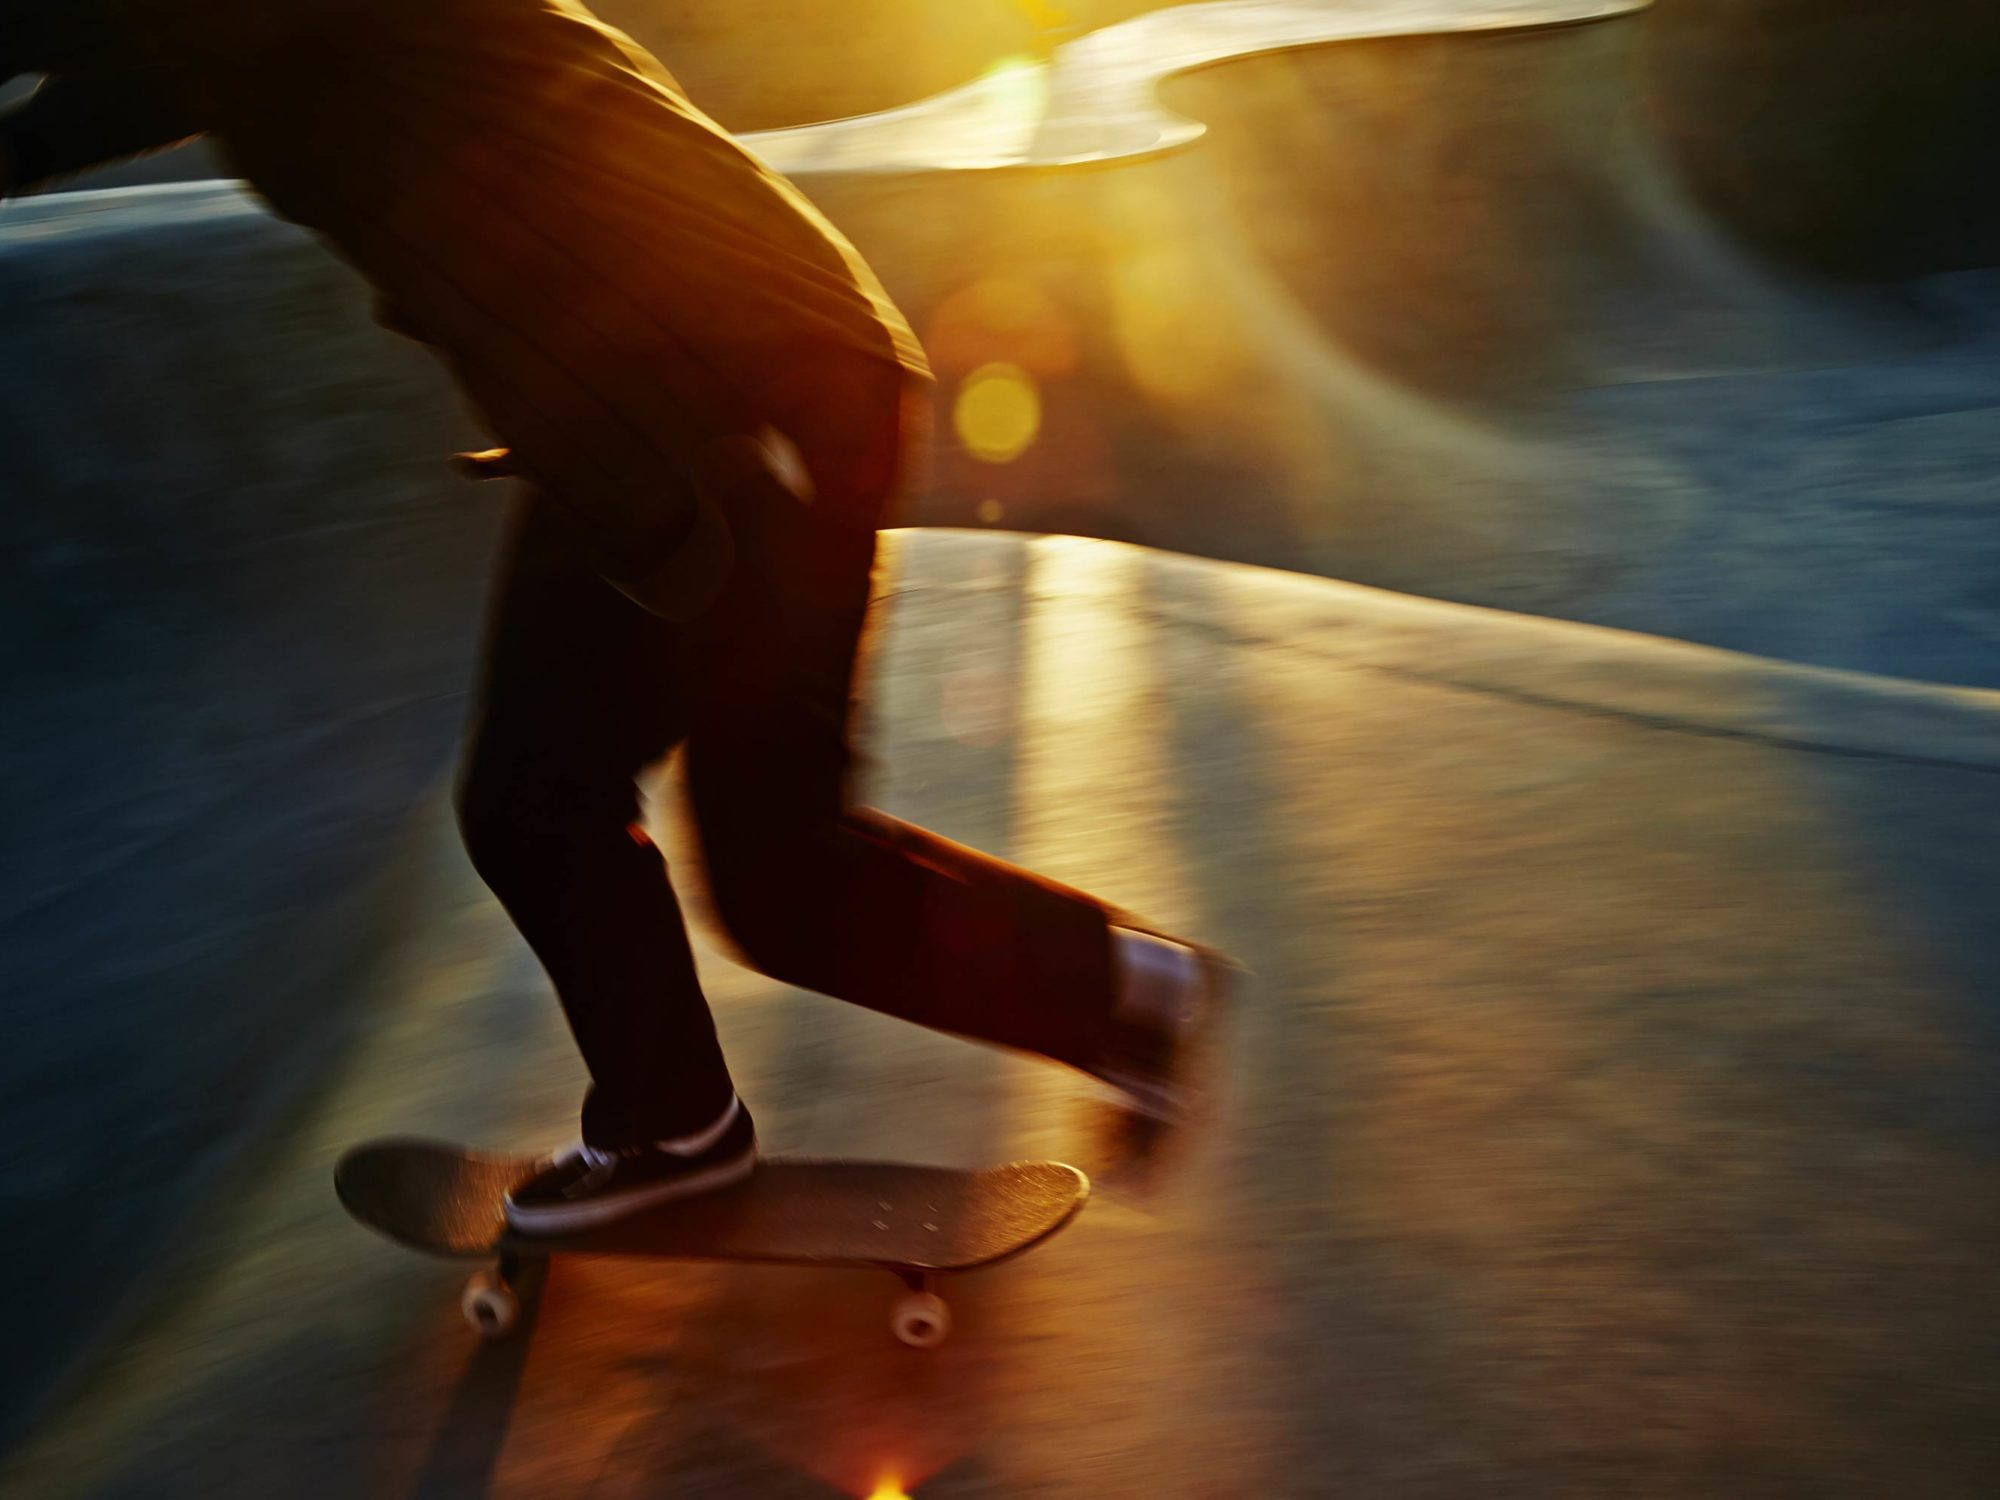 Golden Blur - Skate Park, Venice Beach Collection - Fine Art Photography by Toby Dixon